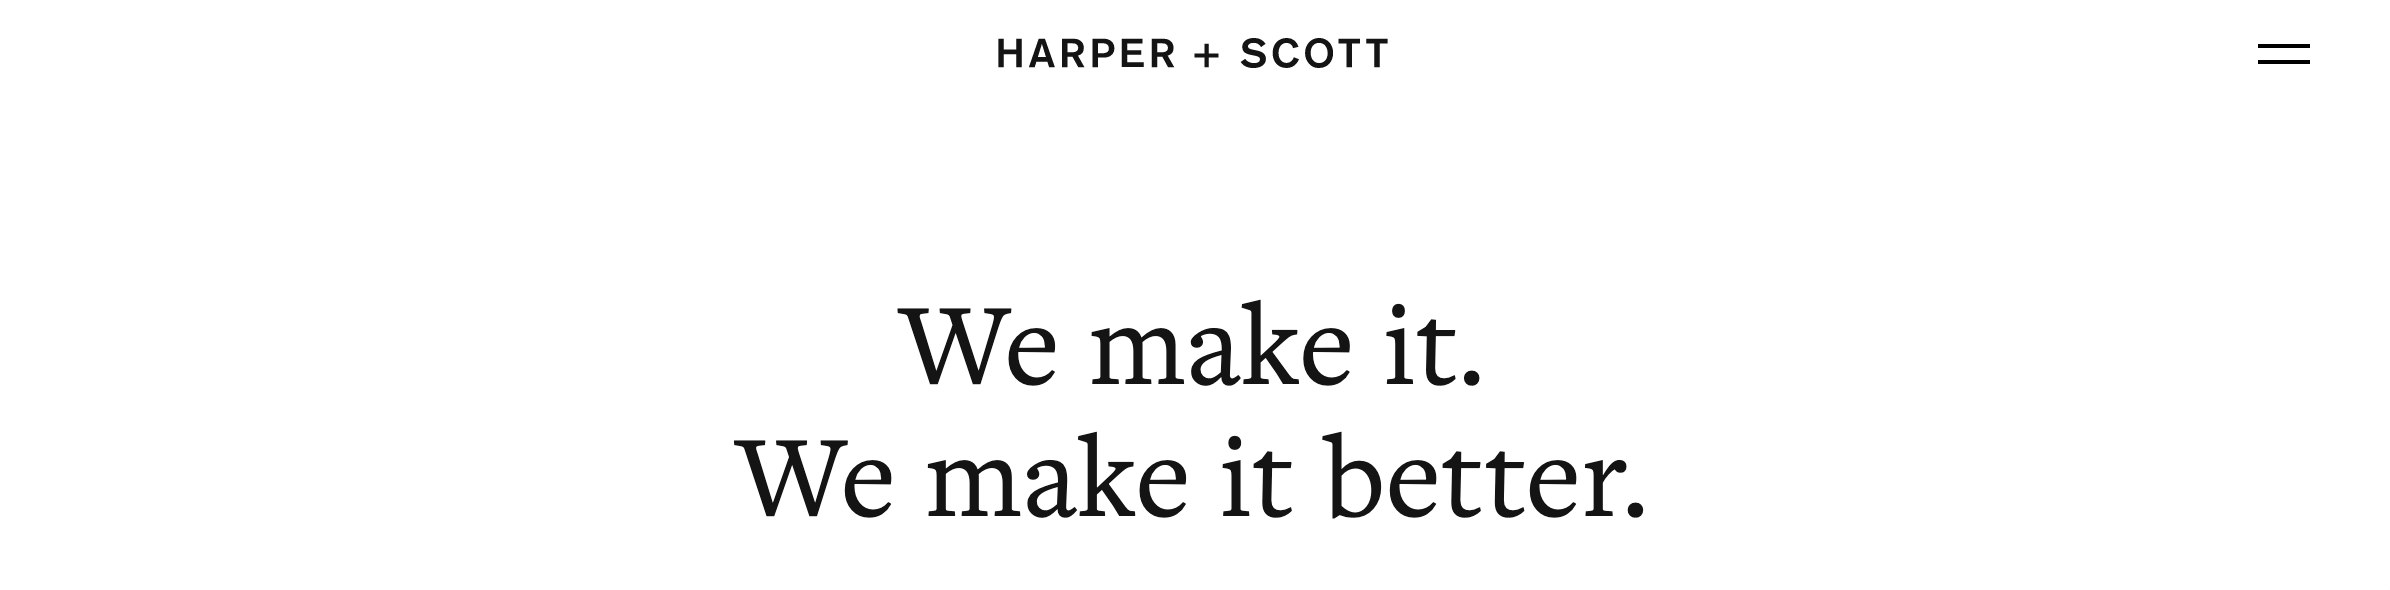 Harper + Scott agency